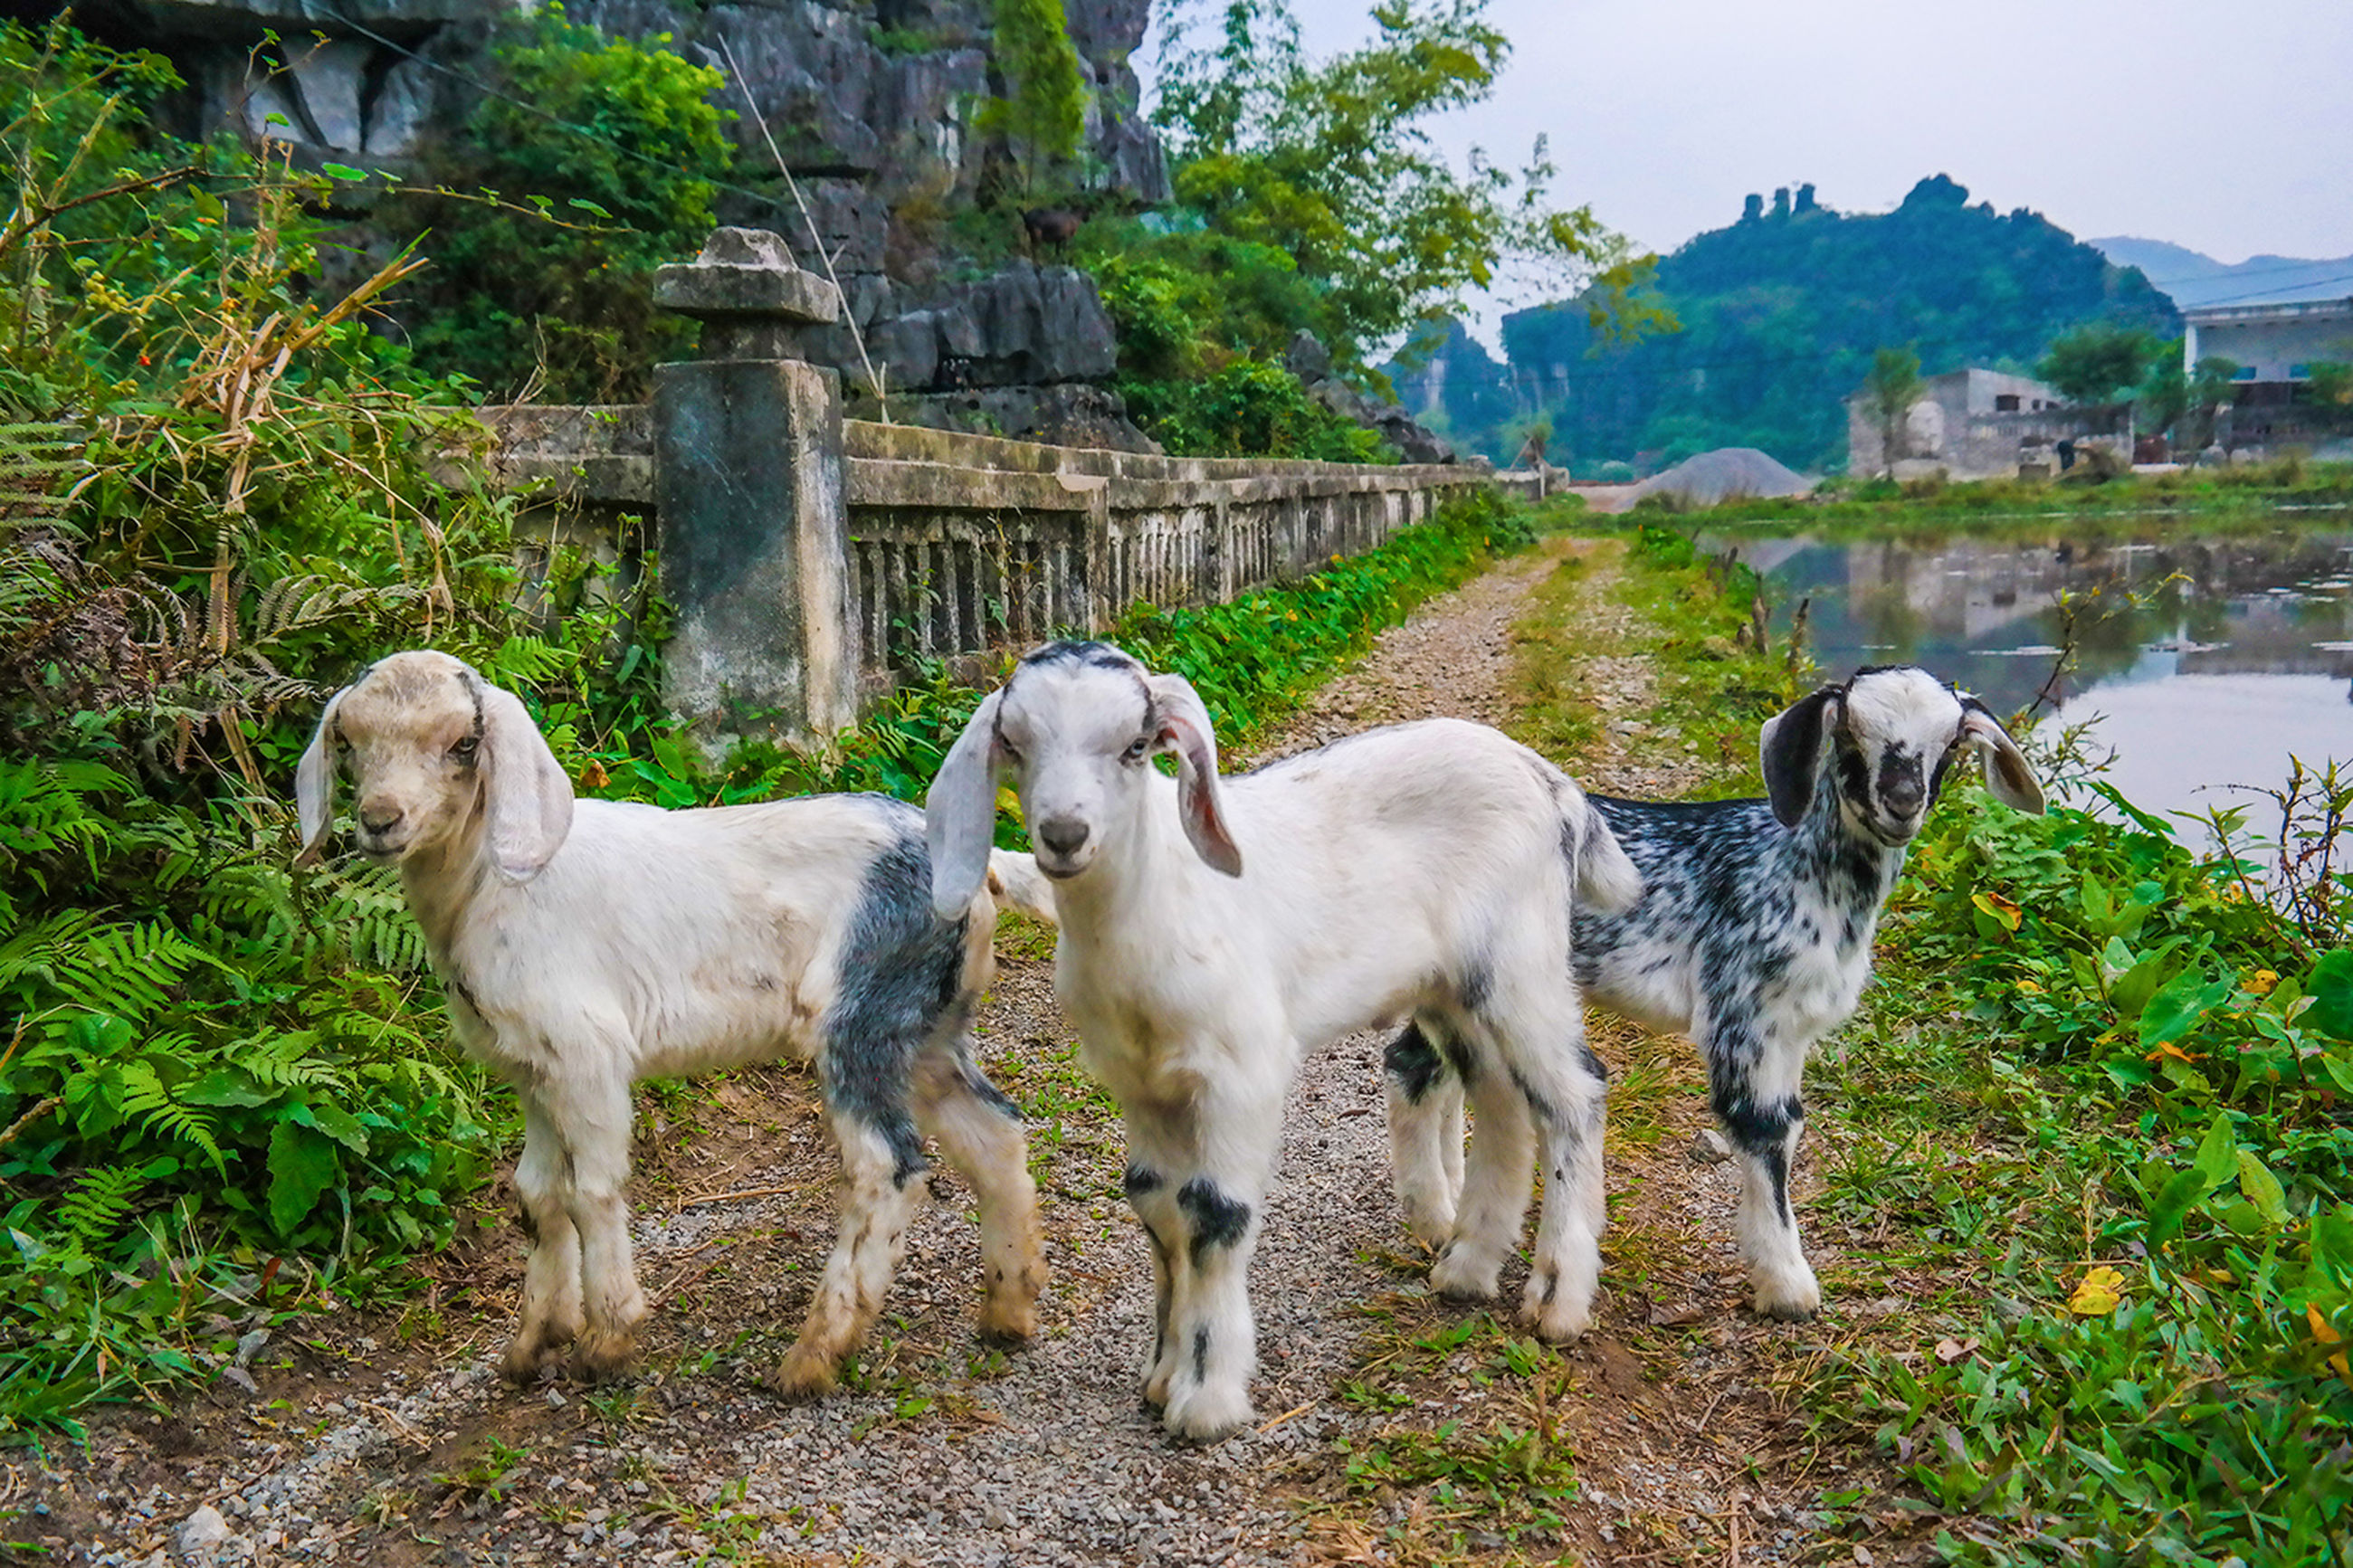 domestic animals, animal themes, mammal, grass, livestock, field, two animals, built structure, architecture, standing, day, cow, building exterior, outdoors, nature, sheep, no people, plant, domestic cattle, pets